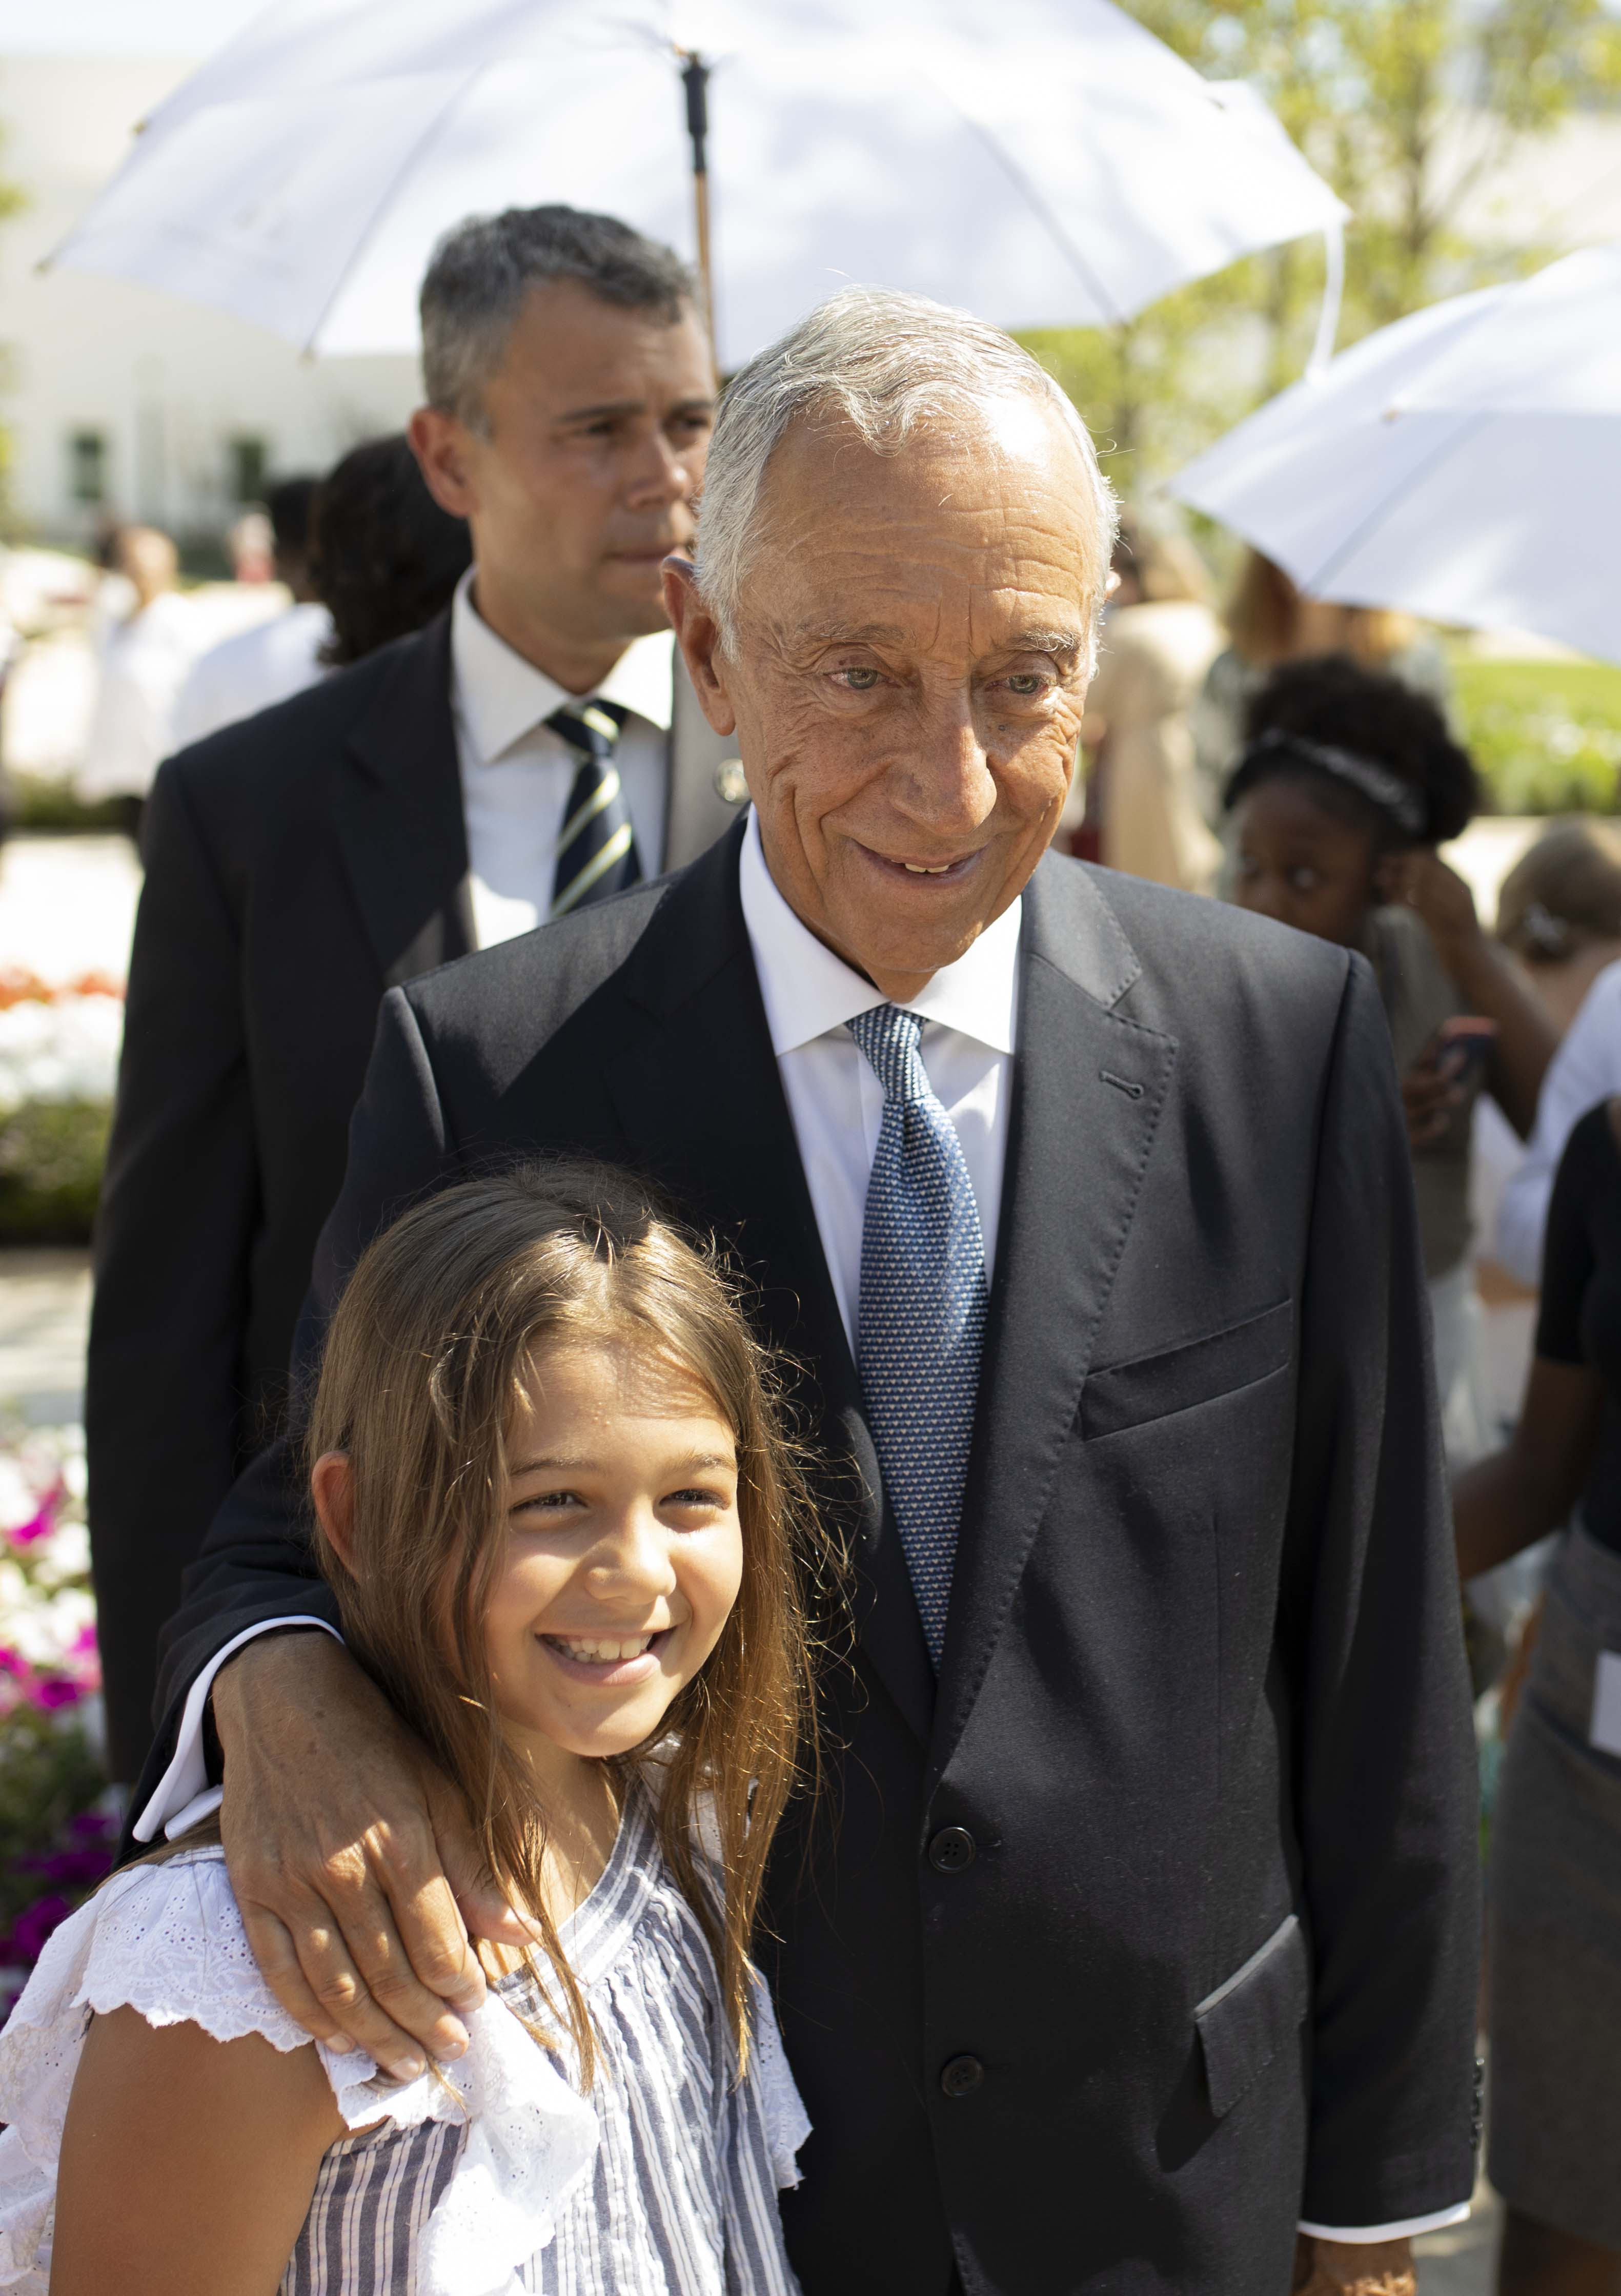 The president of Portugal, Marcelo Rebelo de Sousa takes a picture with a child on the Lisbon Portugal Temple grounds on Aug. 29, 2019.